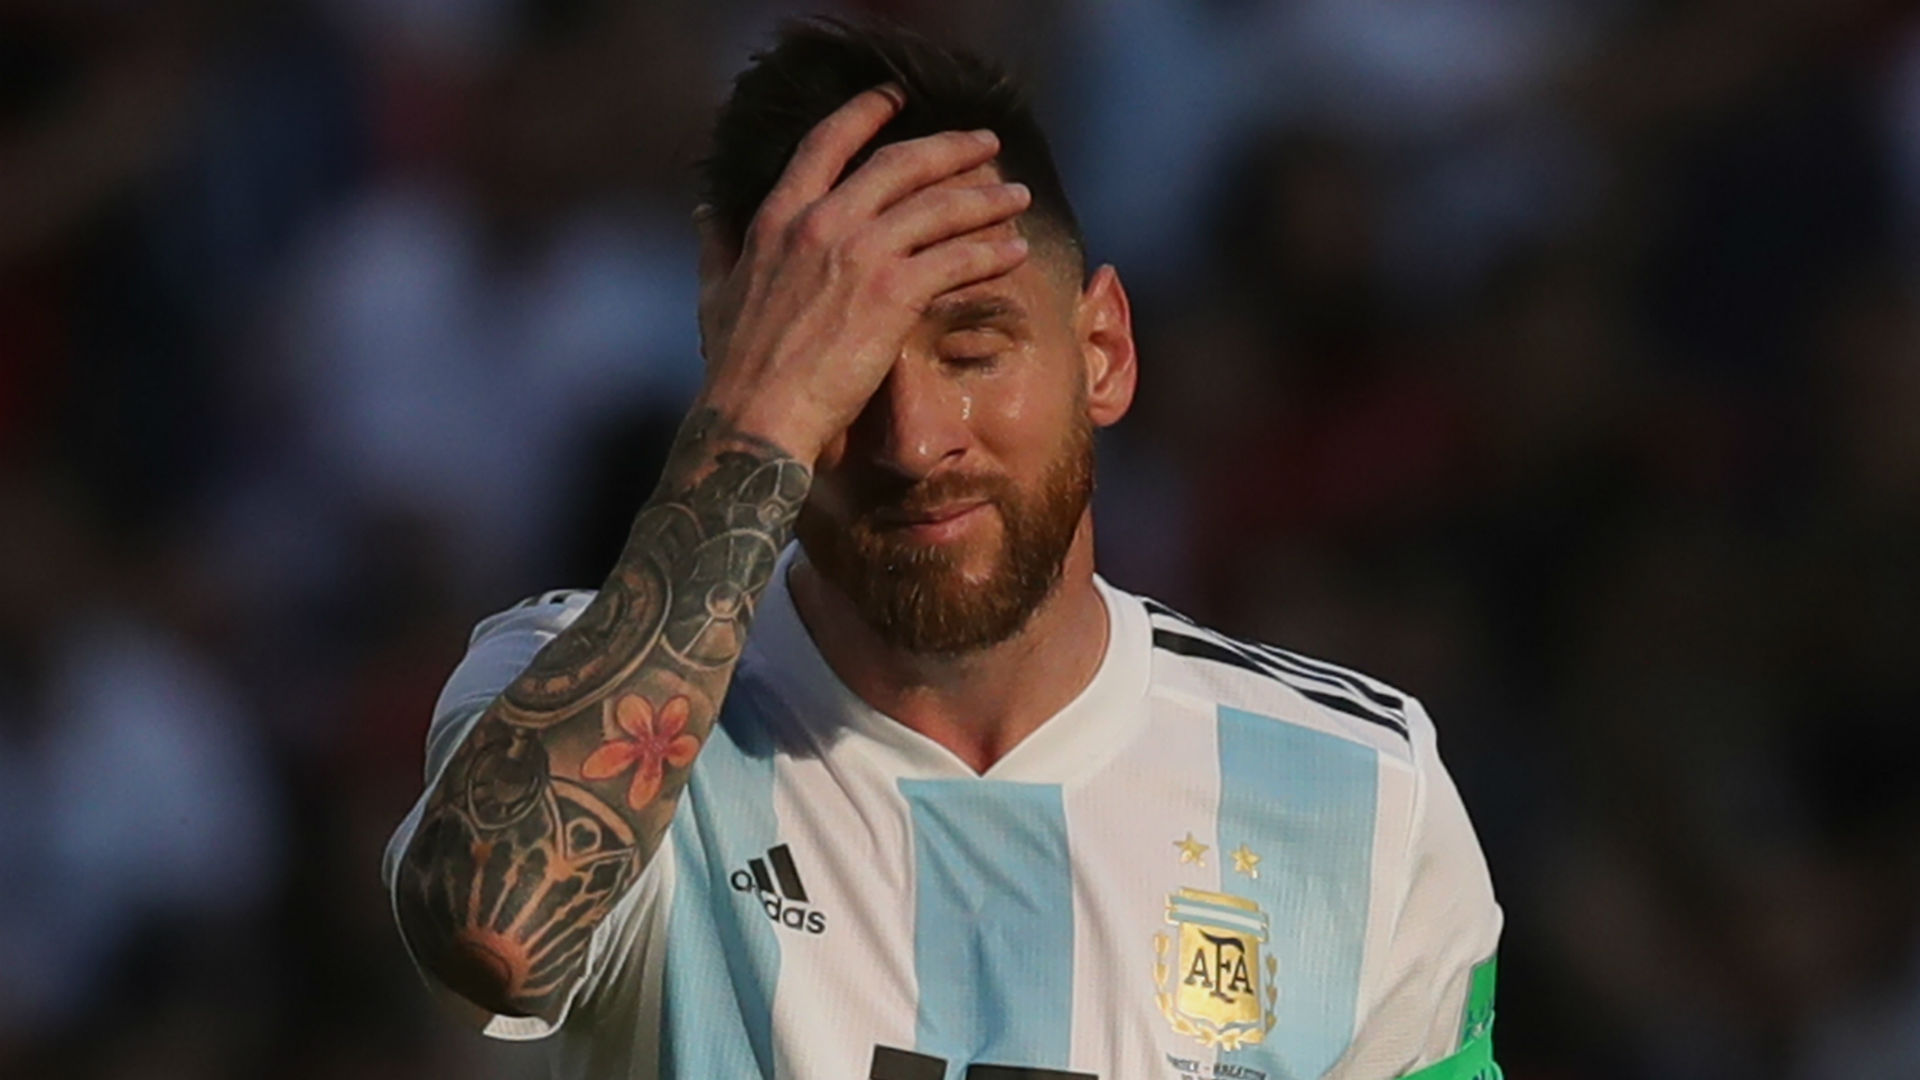 Lionel Messi repeats his dream to conquest trophies with Argentina